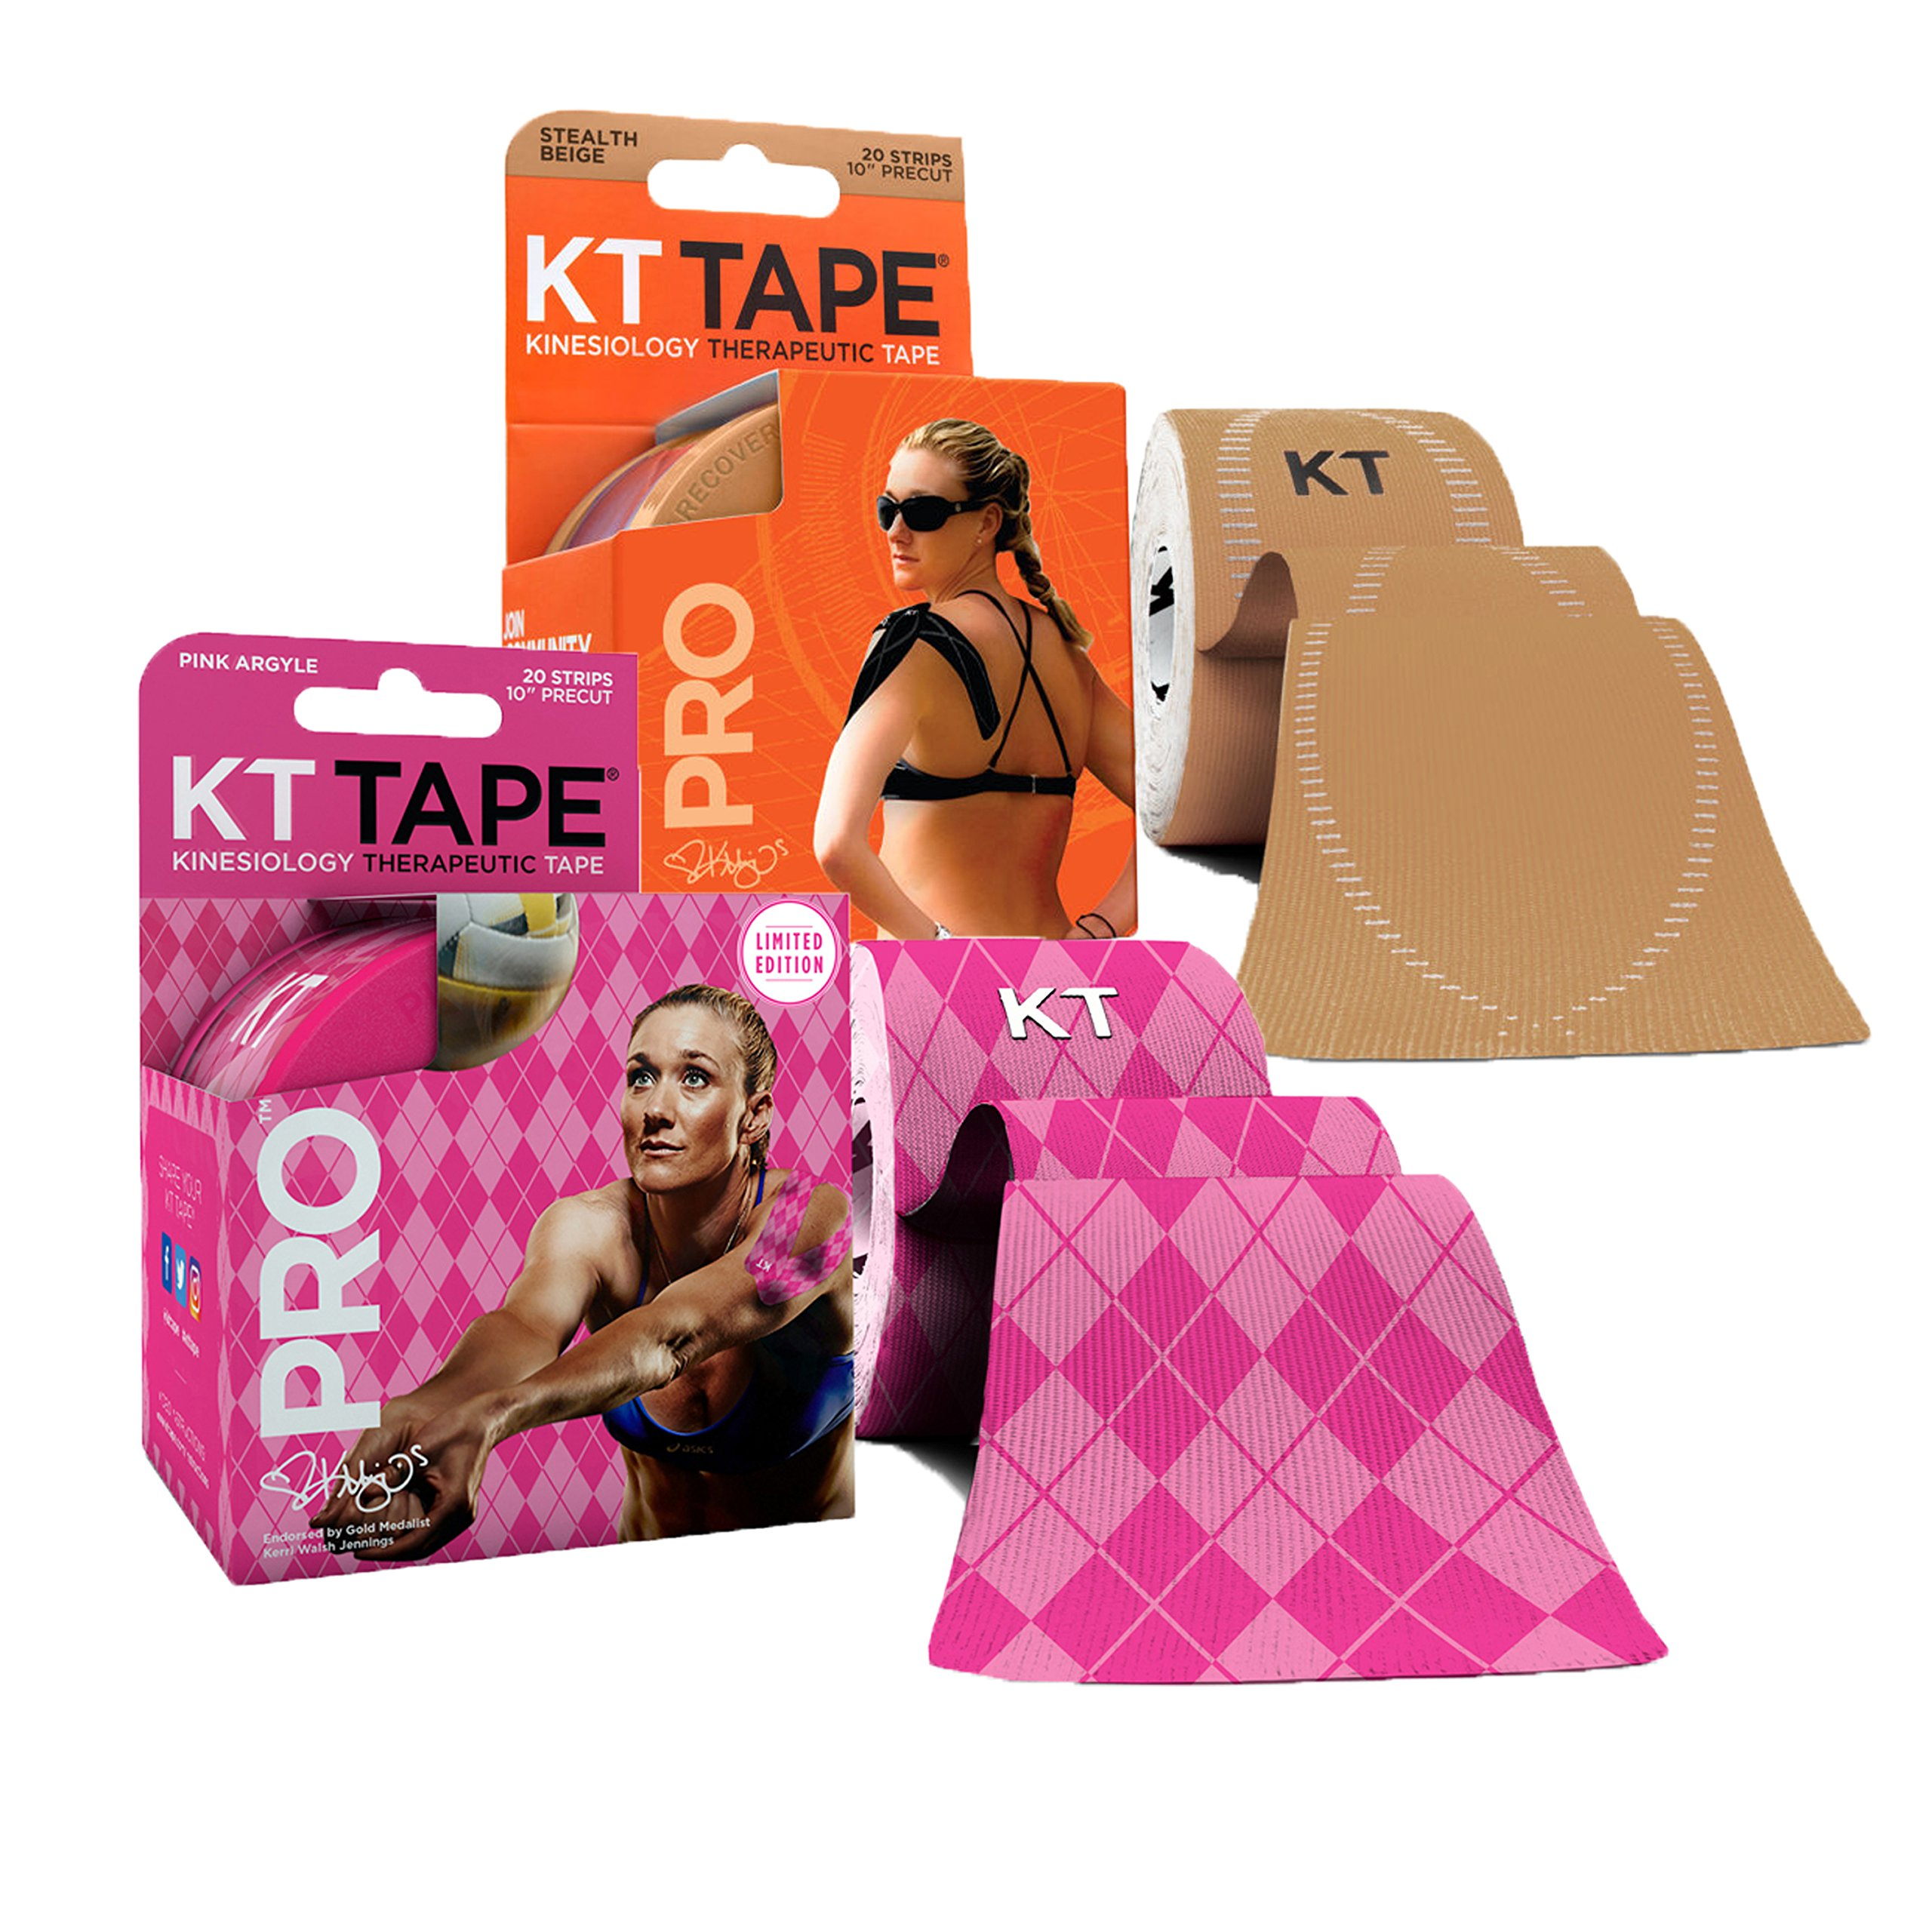 KT Tape PRO Precut 40-Strip Synthetic Kinesiology Tape Two-Roll Bundle - Stealth Beige & Pink Argyle